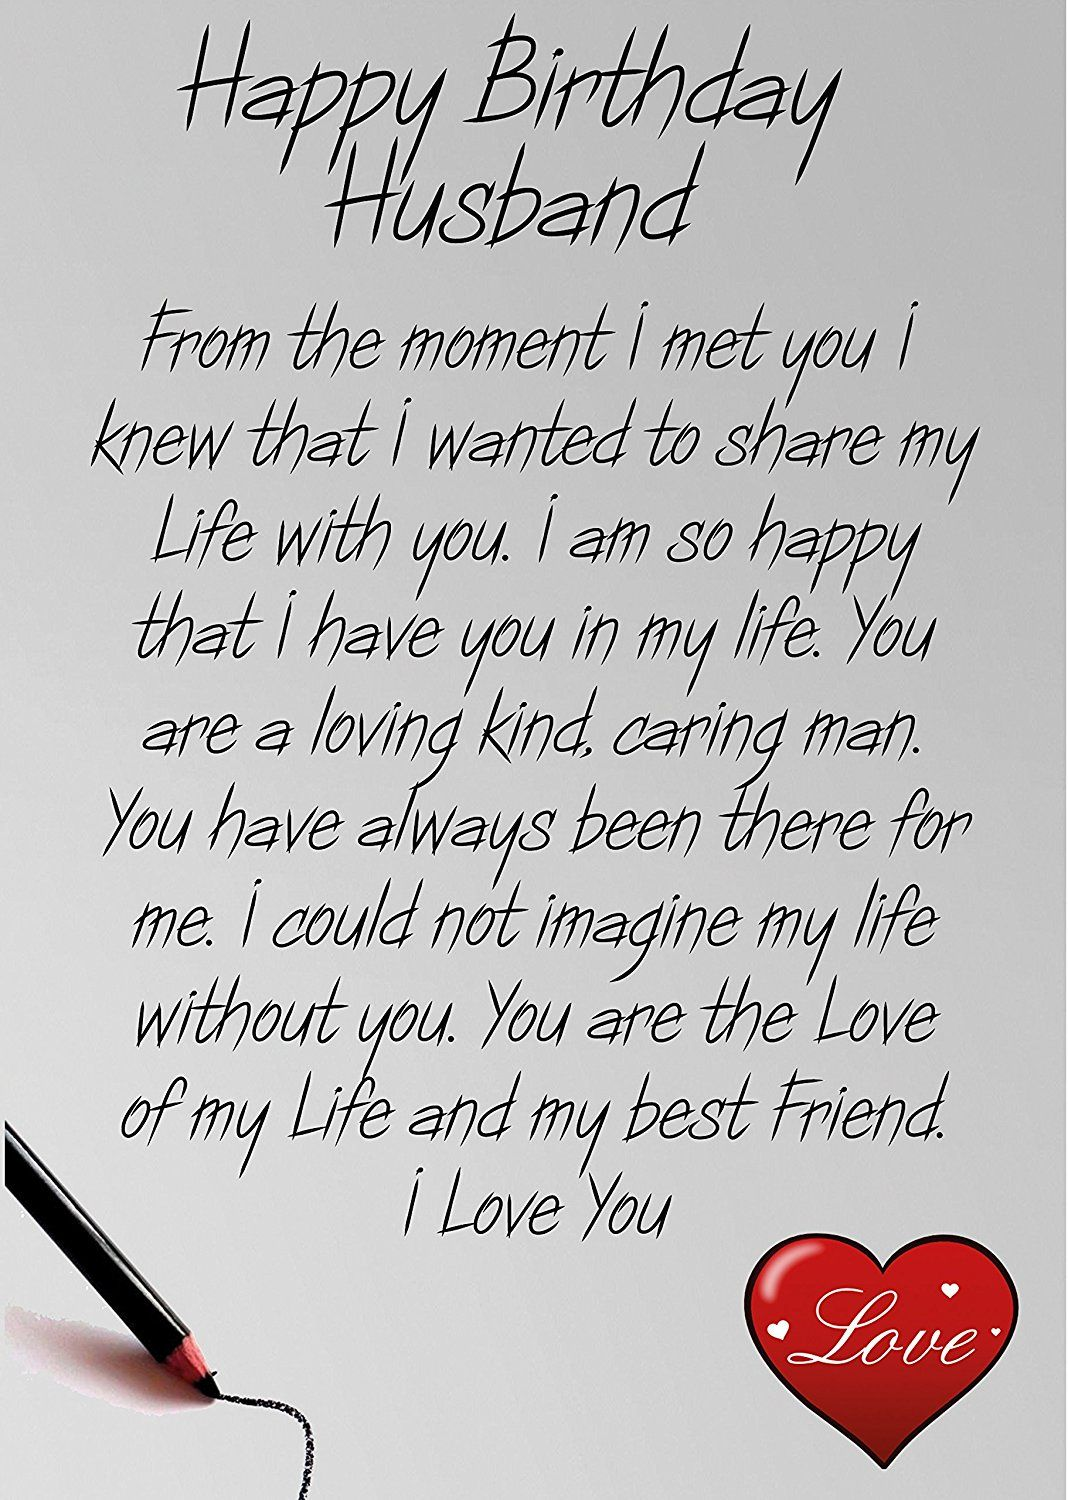 Sample love letter to my husband on his birthday mamiihondenk garrett my love happiness birthdays and 10 business complaint letter templates free sample spiritdancerdesigns Gallery